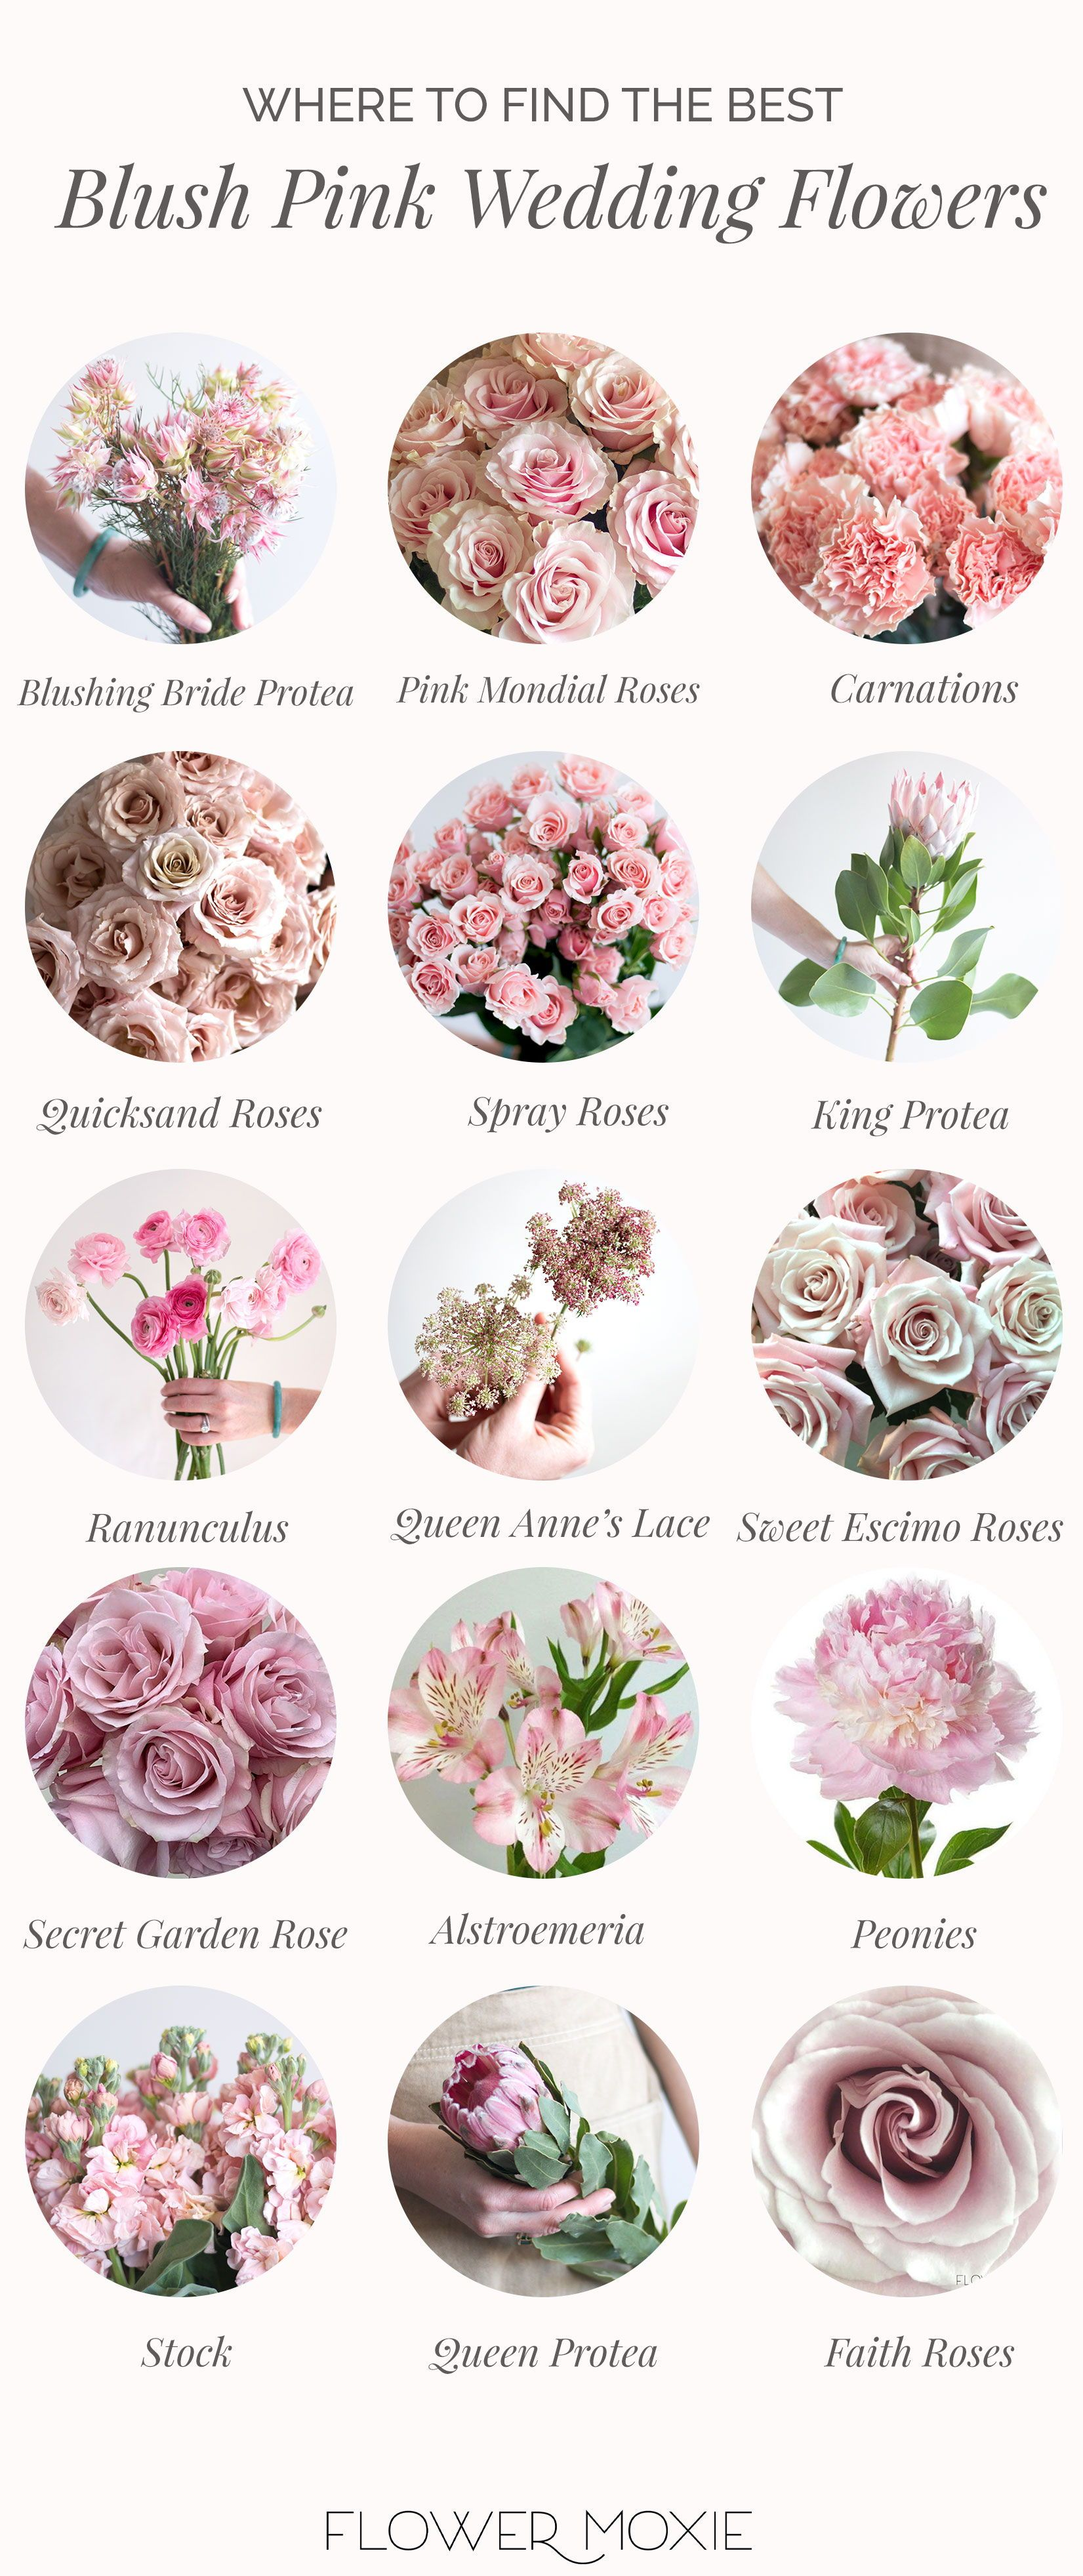 Shop All Of Our Bulk Fresh Wholesale Diy Wedding Flowers In Blush Pink Blushweddingflow Wedding Flower Types Fresh Wedding Flowers Blush Pink Wedding Flowers